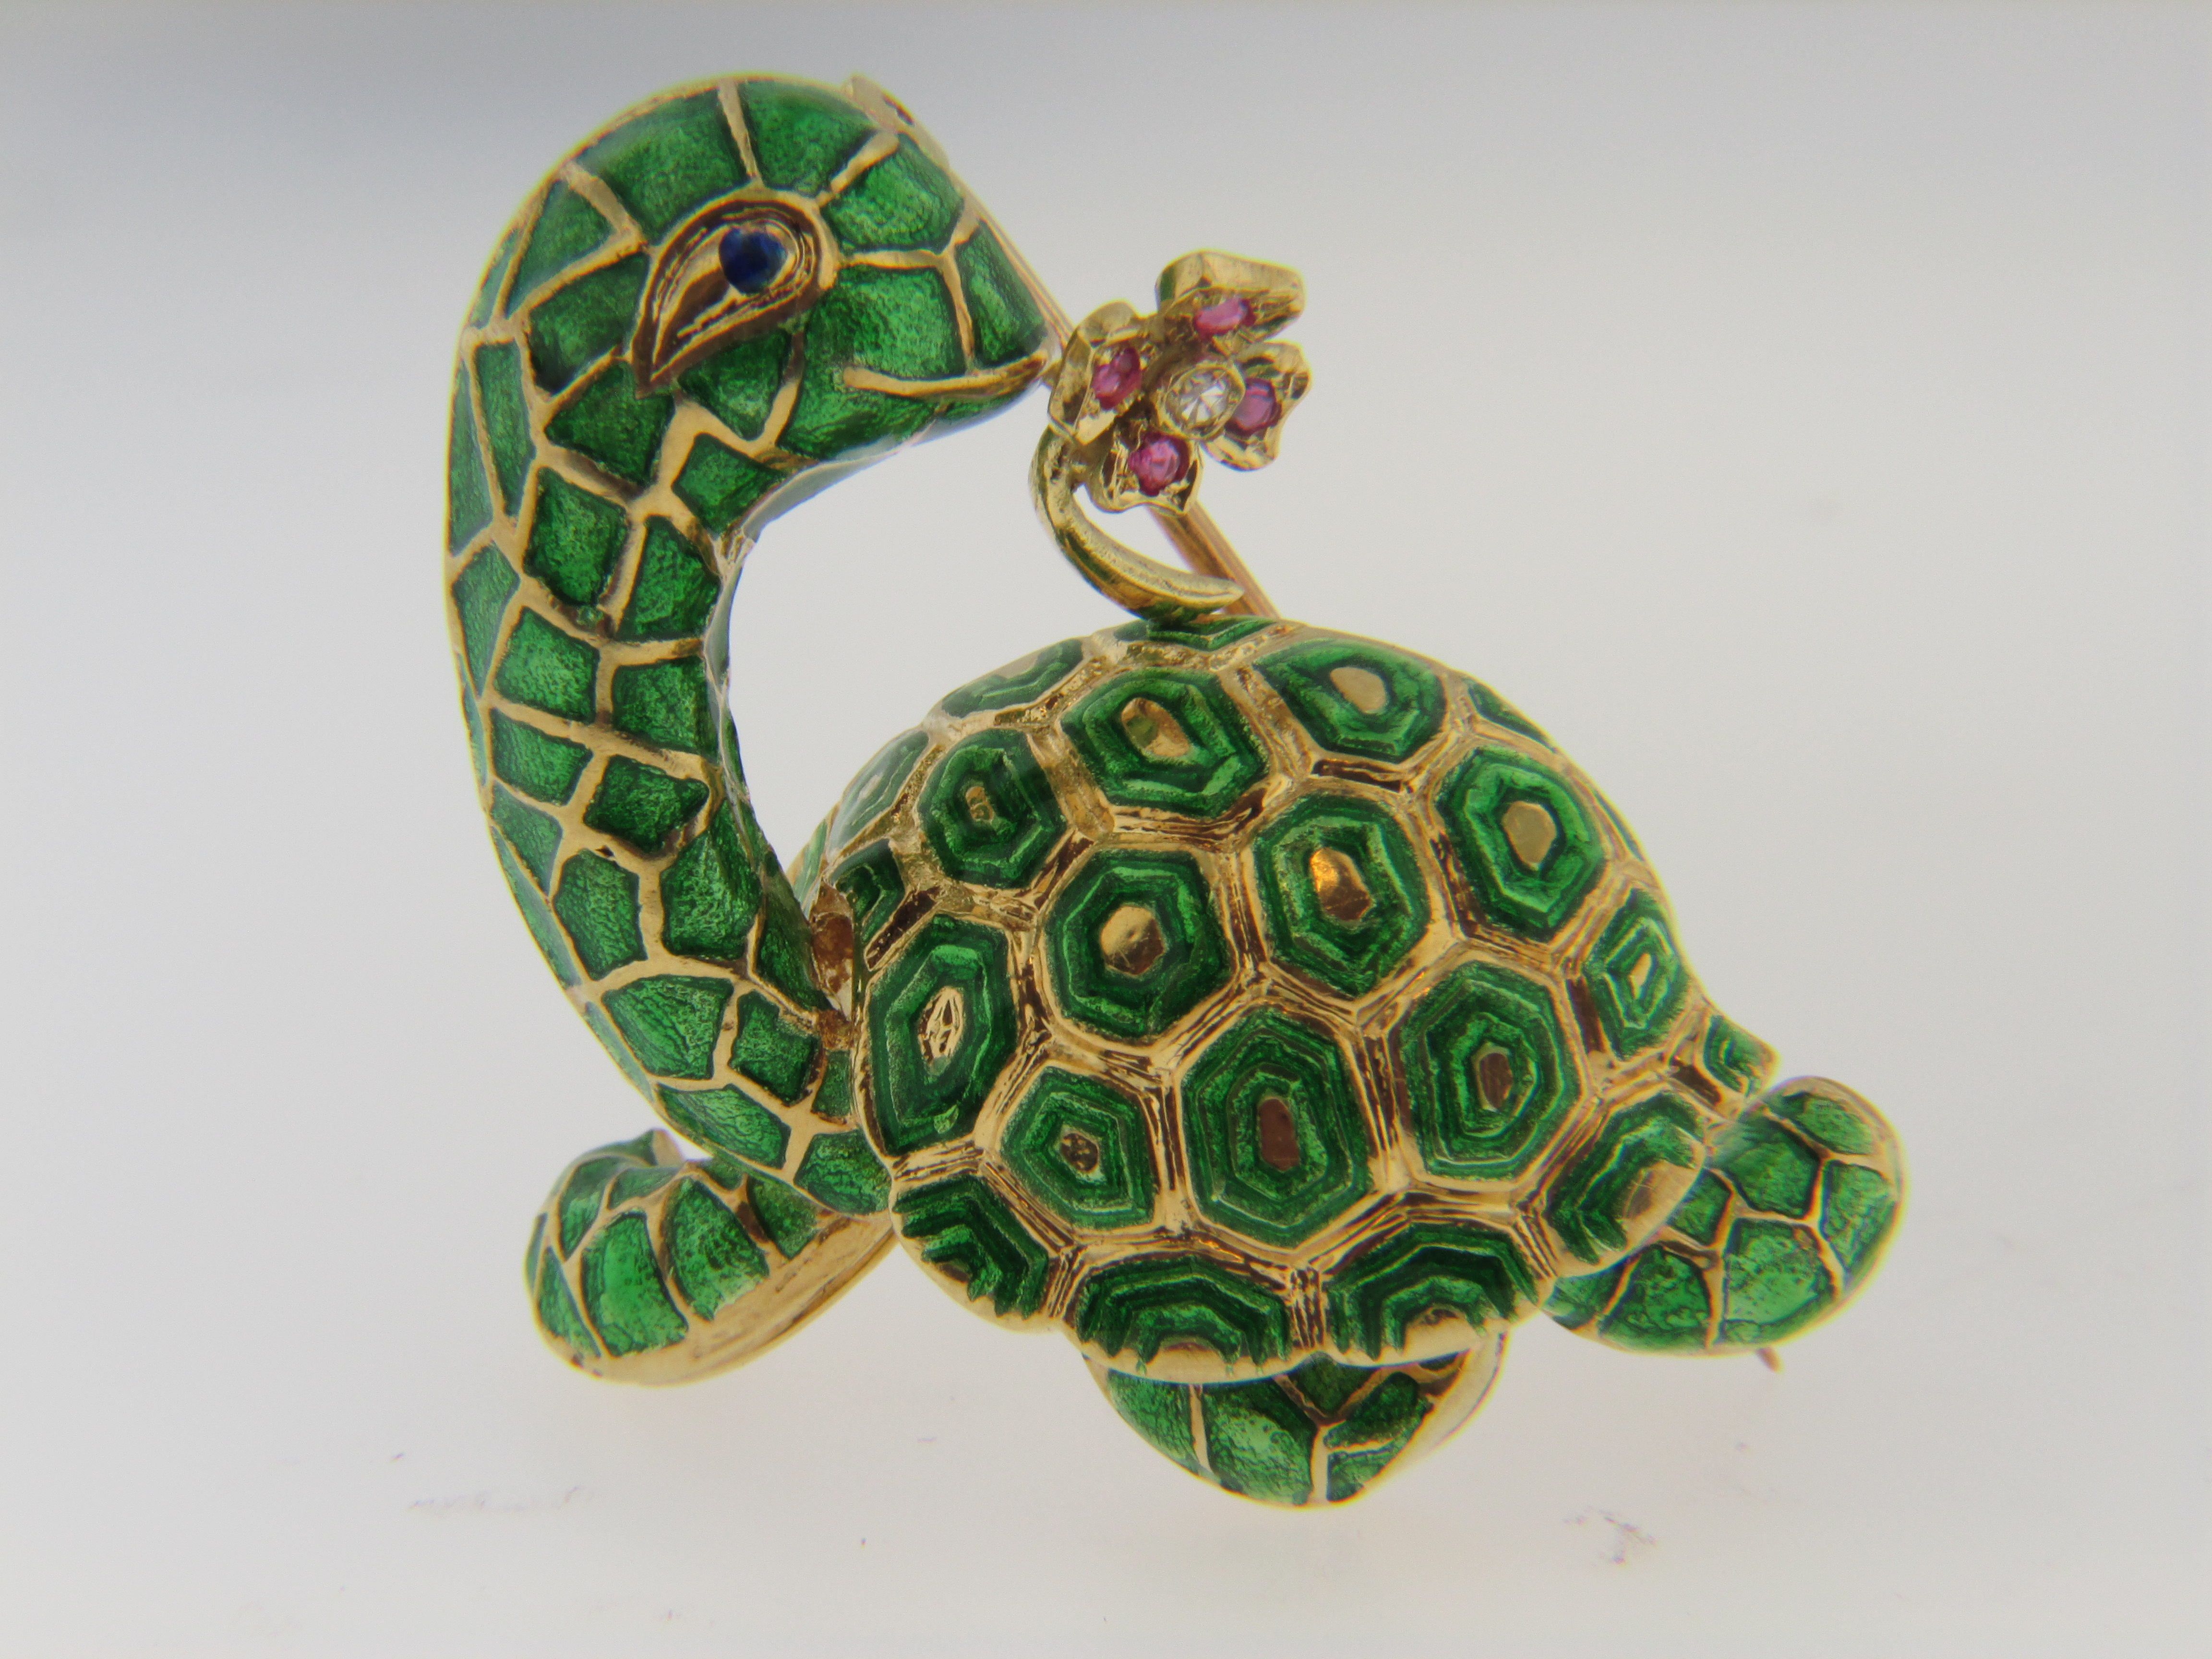 1970's 18k Yellow Gold and Green Enamel Turtle Brooch with a Diamond and Ruby Flower